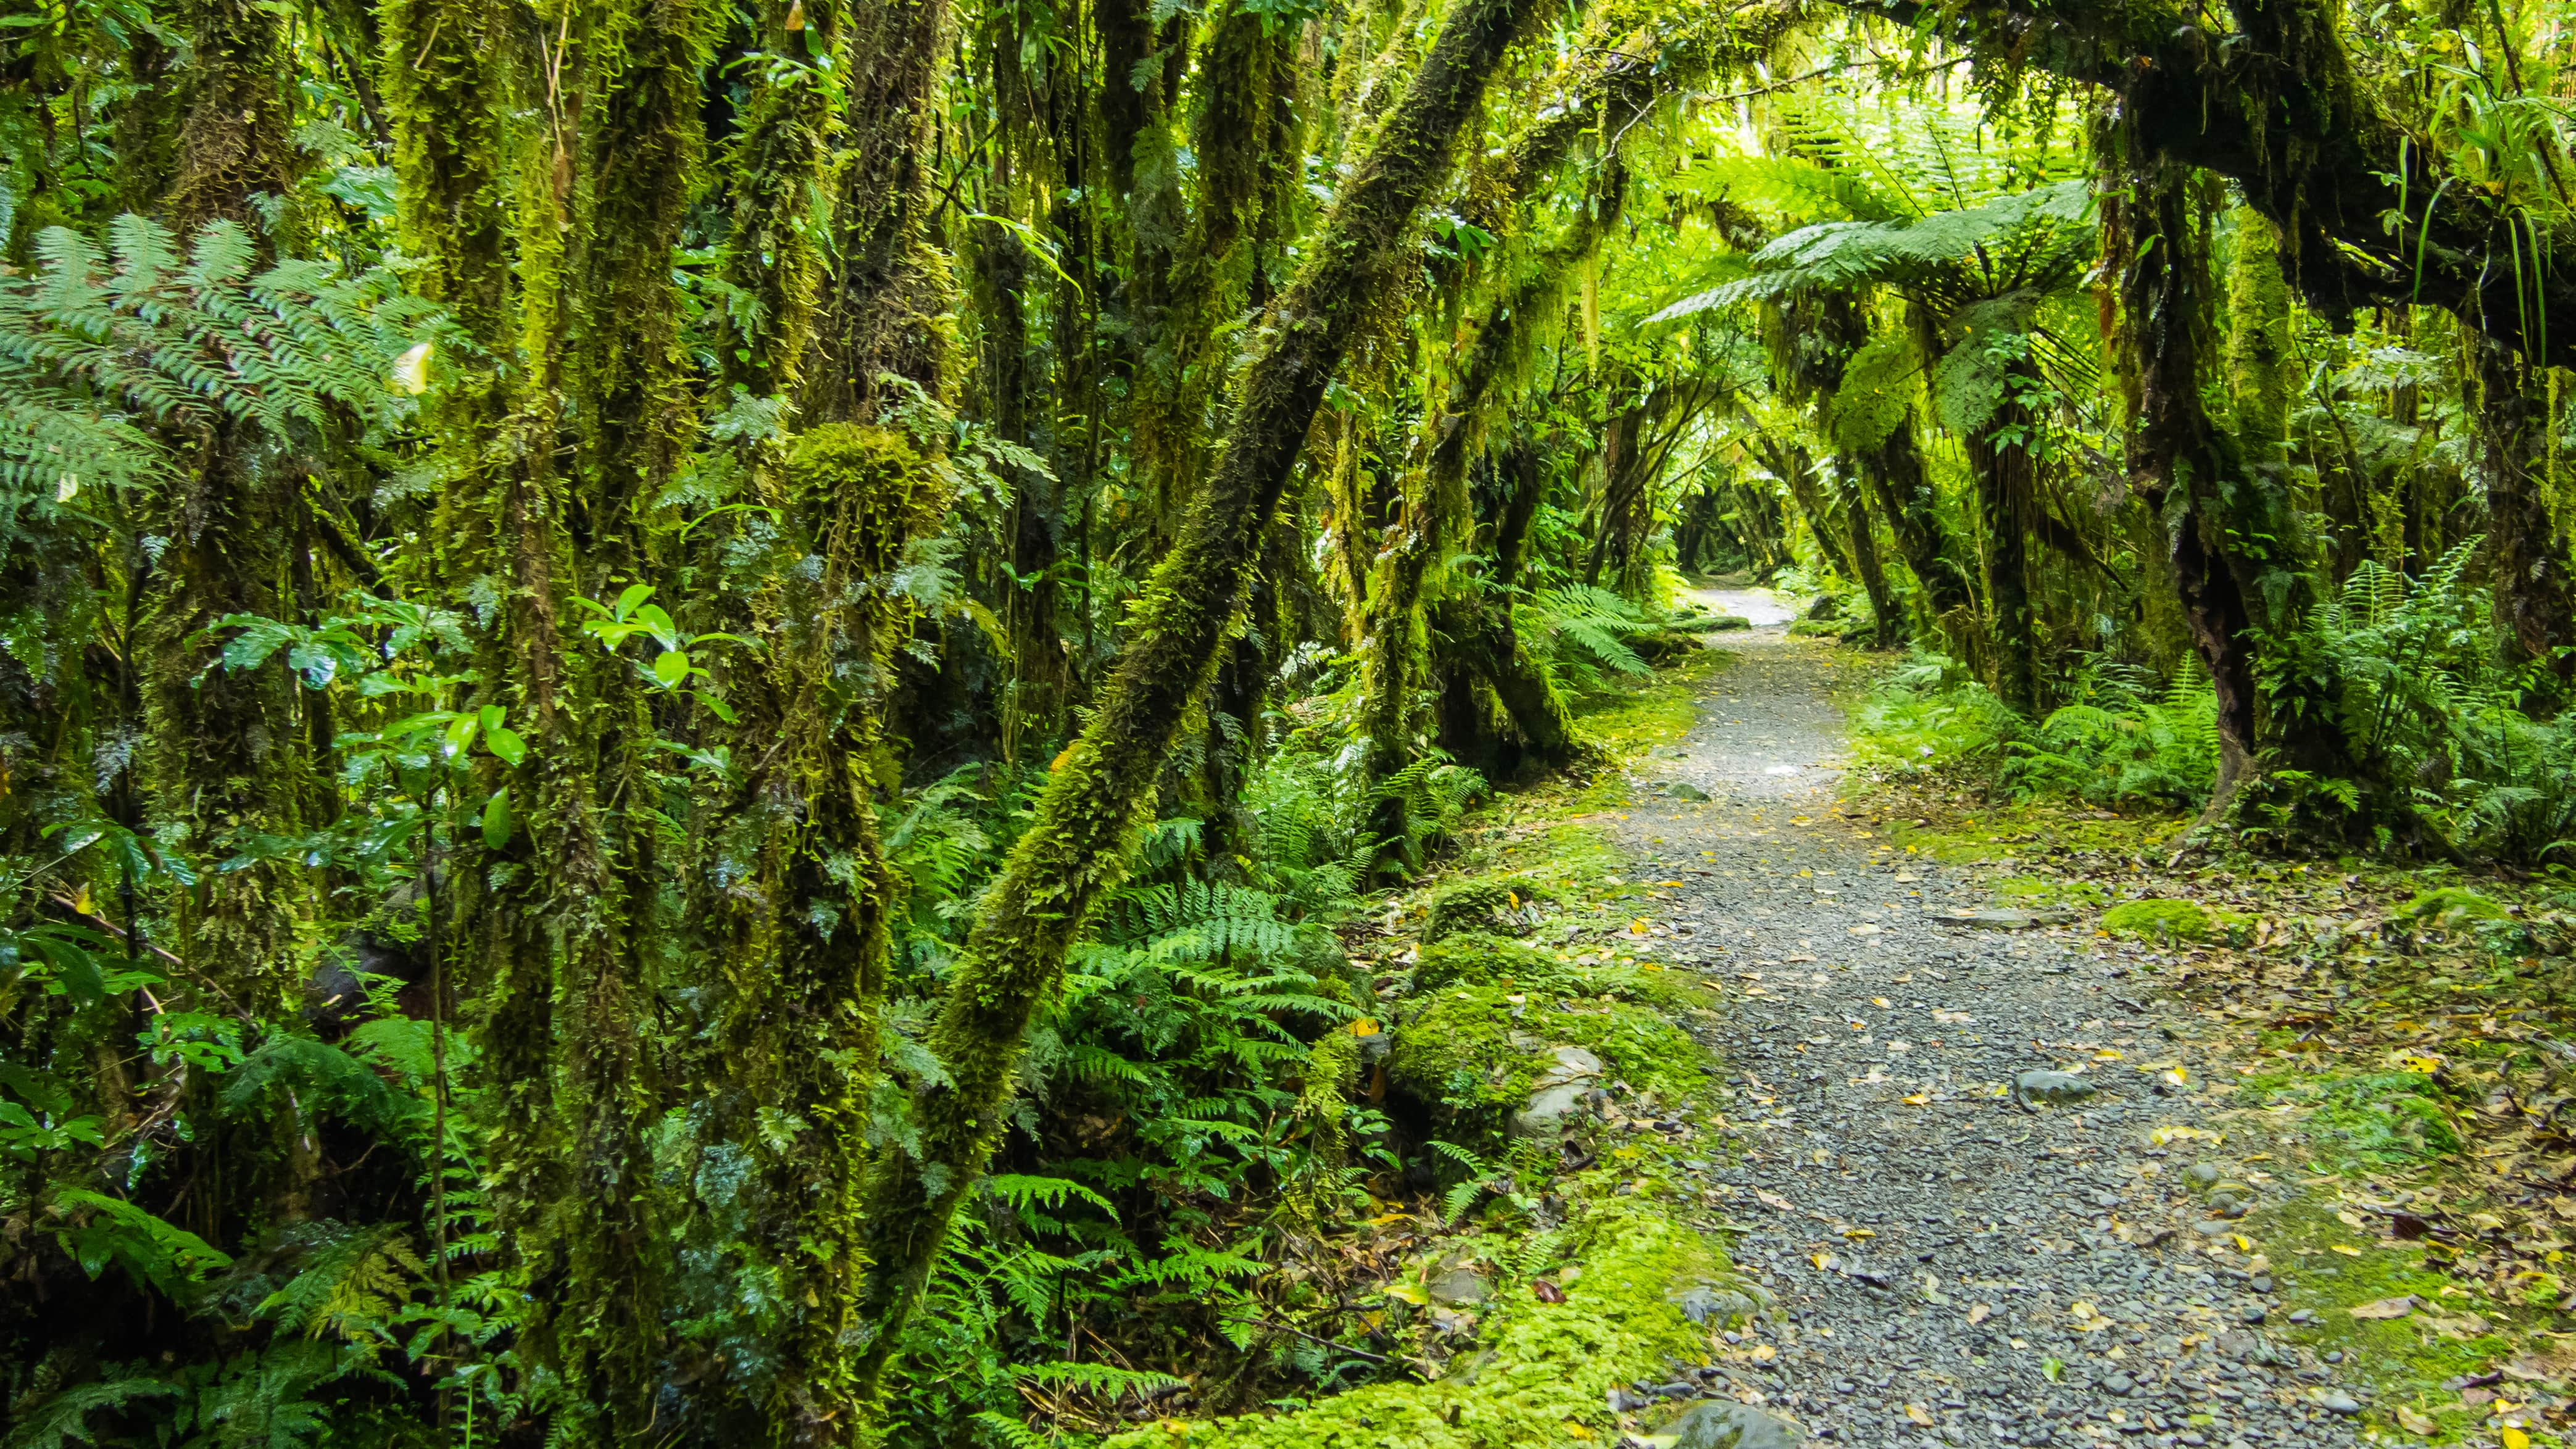 native New Zealand forest with hiking path in oceania